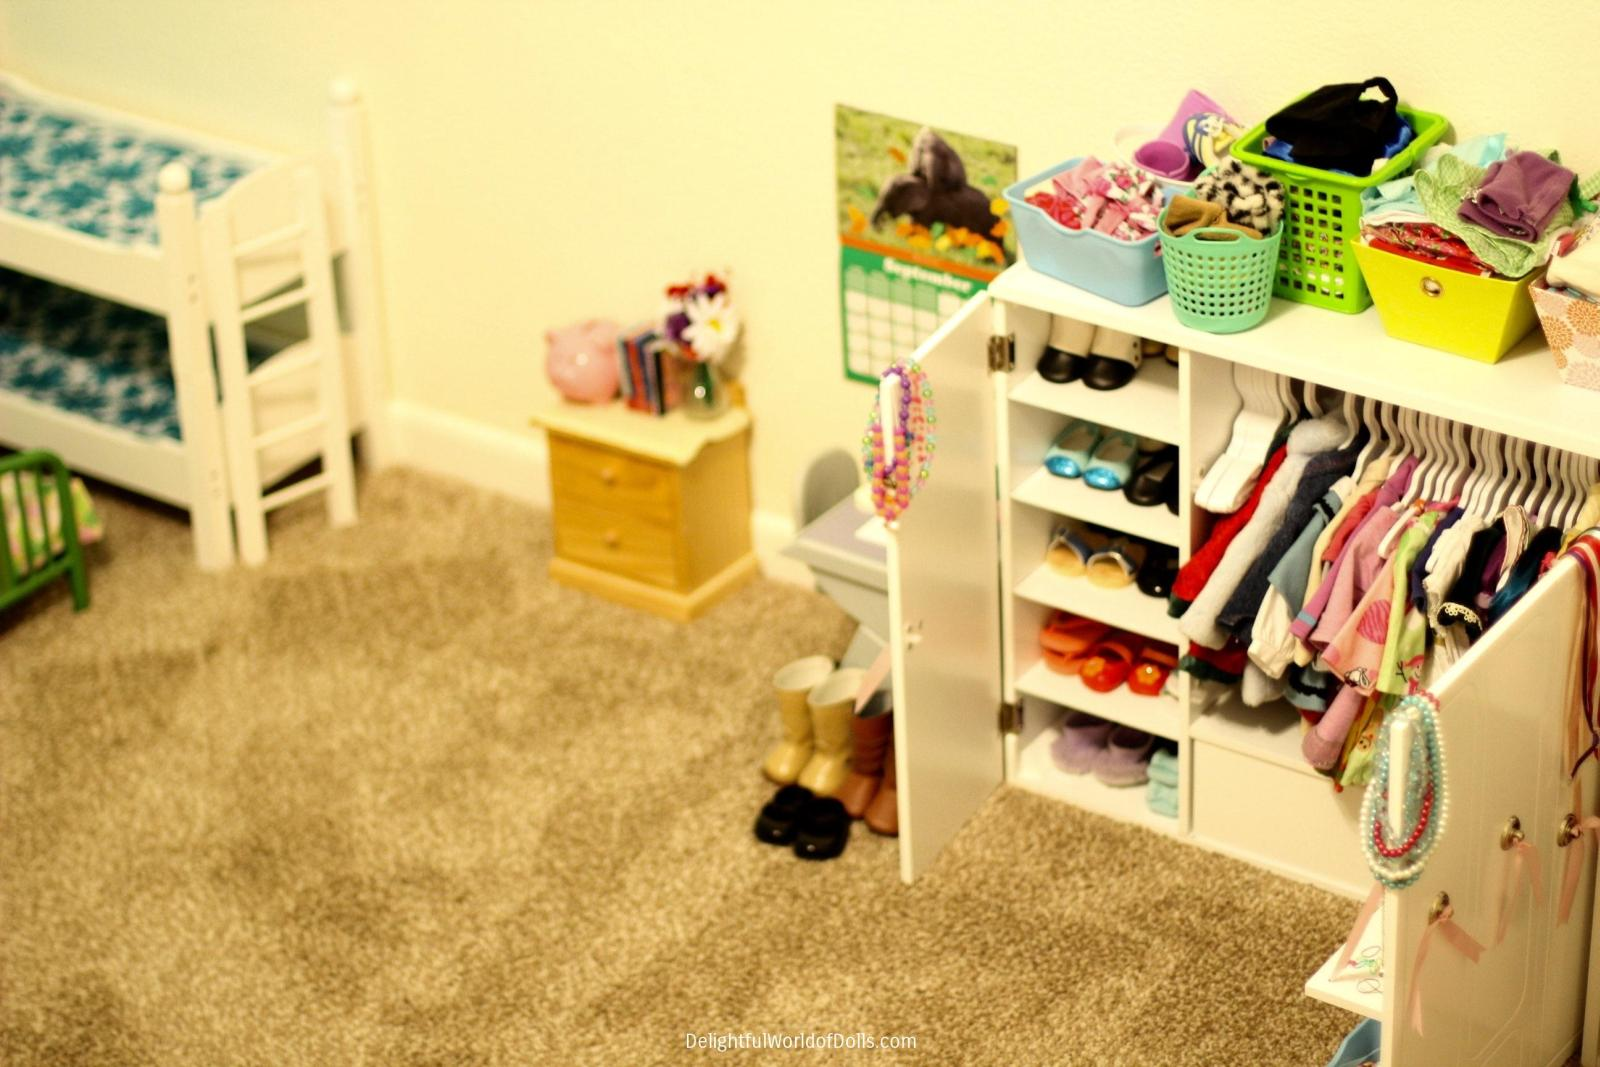 The Finished Doll Room!